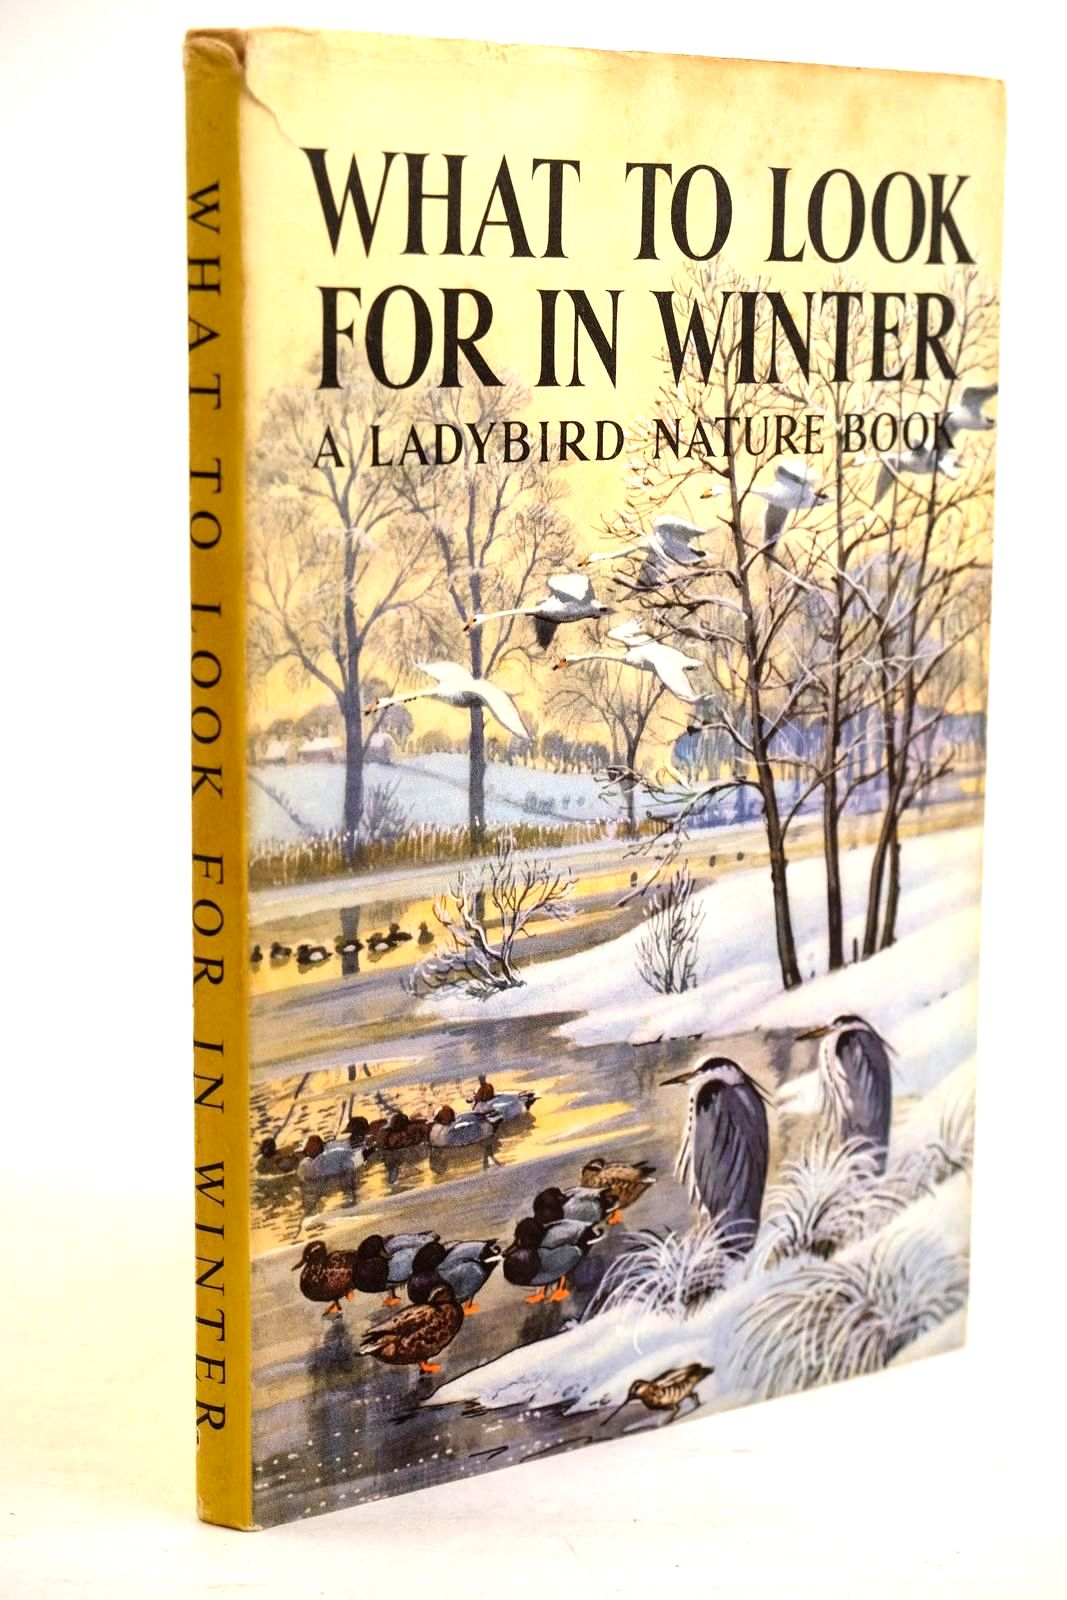 Photo of WHAT TO LOOK FOR IN WINTER written by Watson, E.L. Grant illustrated by Tunnicliffe, C.F. published by Wills & Hepworth Ltd. (STOCK CODE: 1320638)  for sale by Stella & Rose's Books